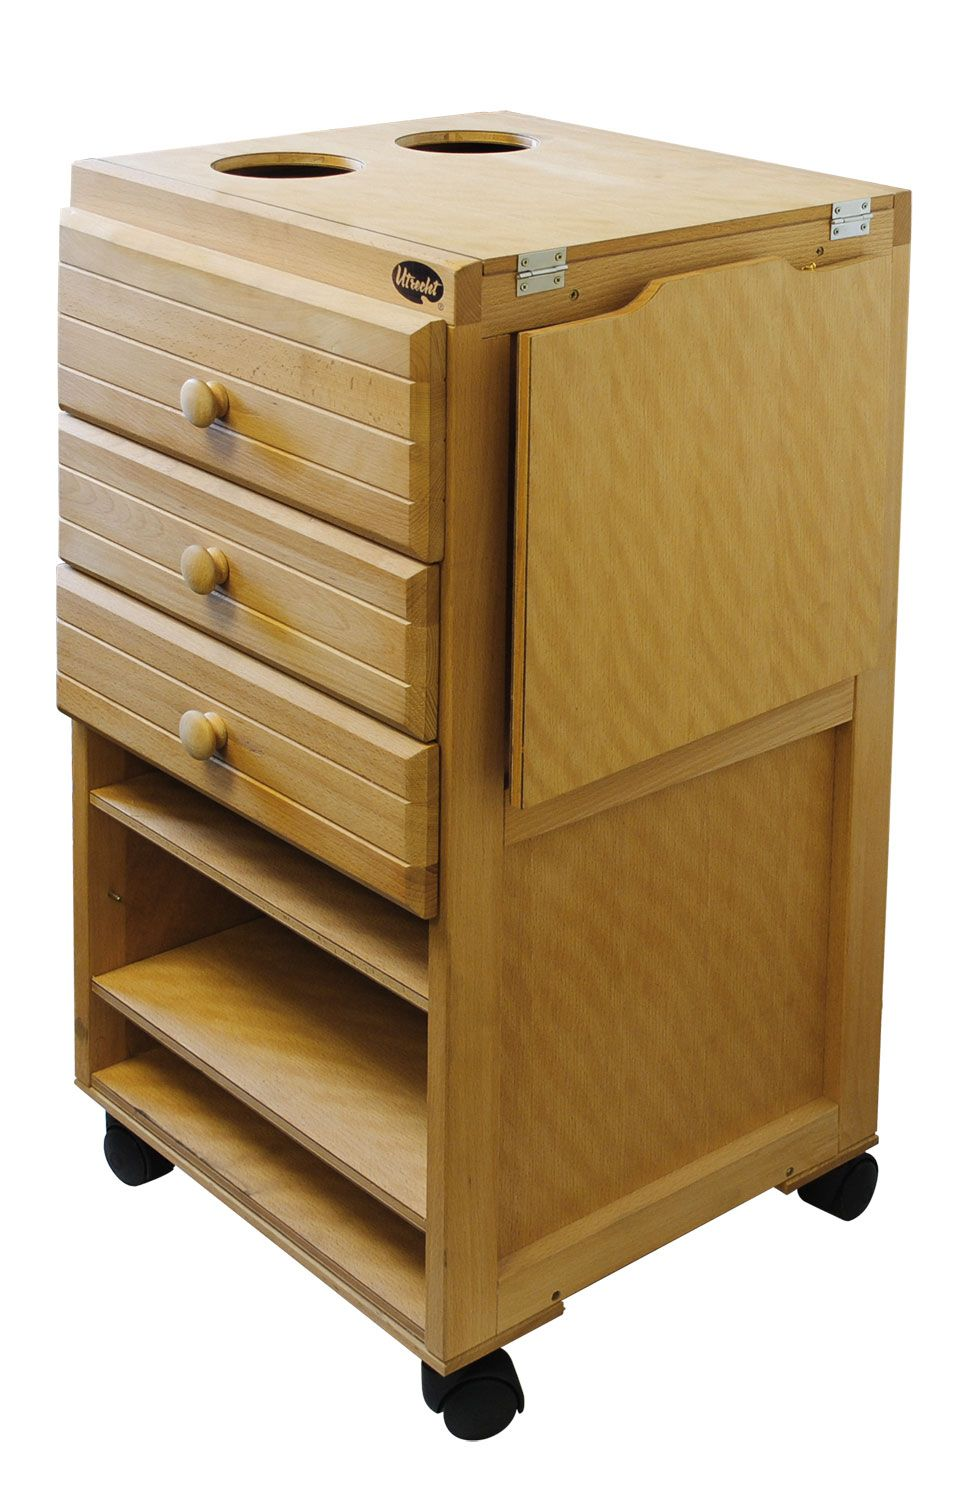 Why Are These So Expensive They Not That Hard To Build Taboret For Art Storage 300 00